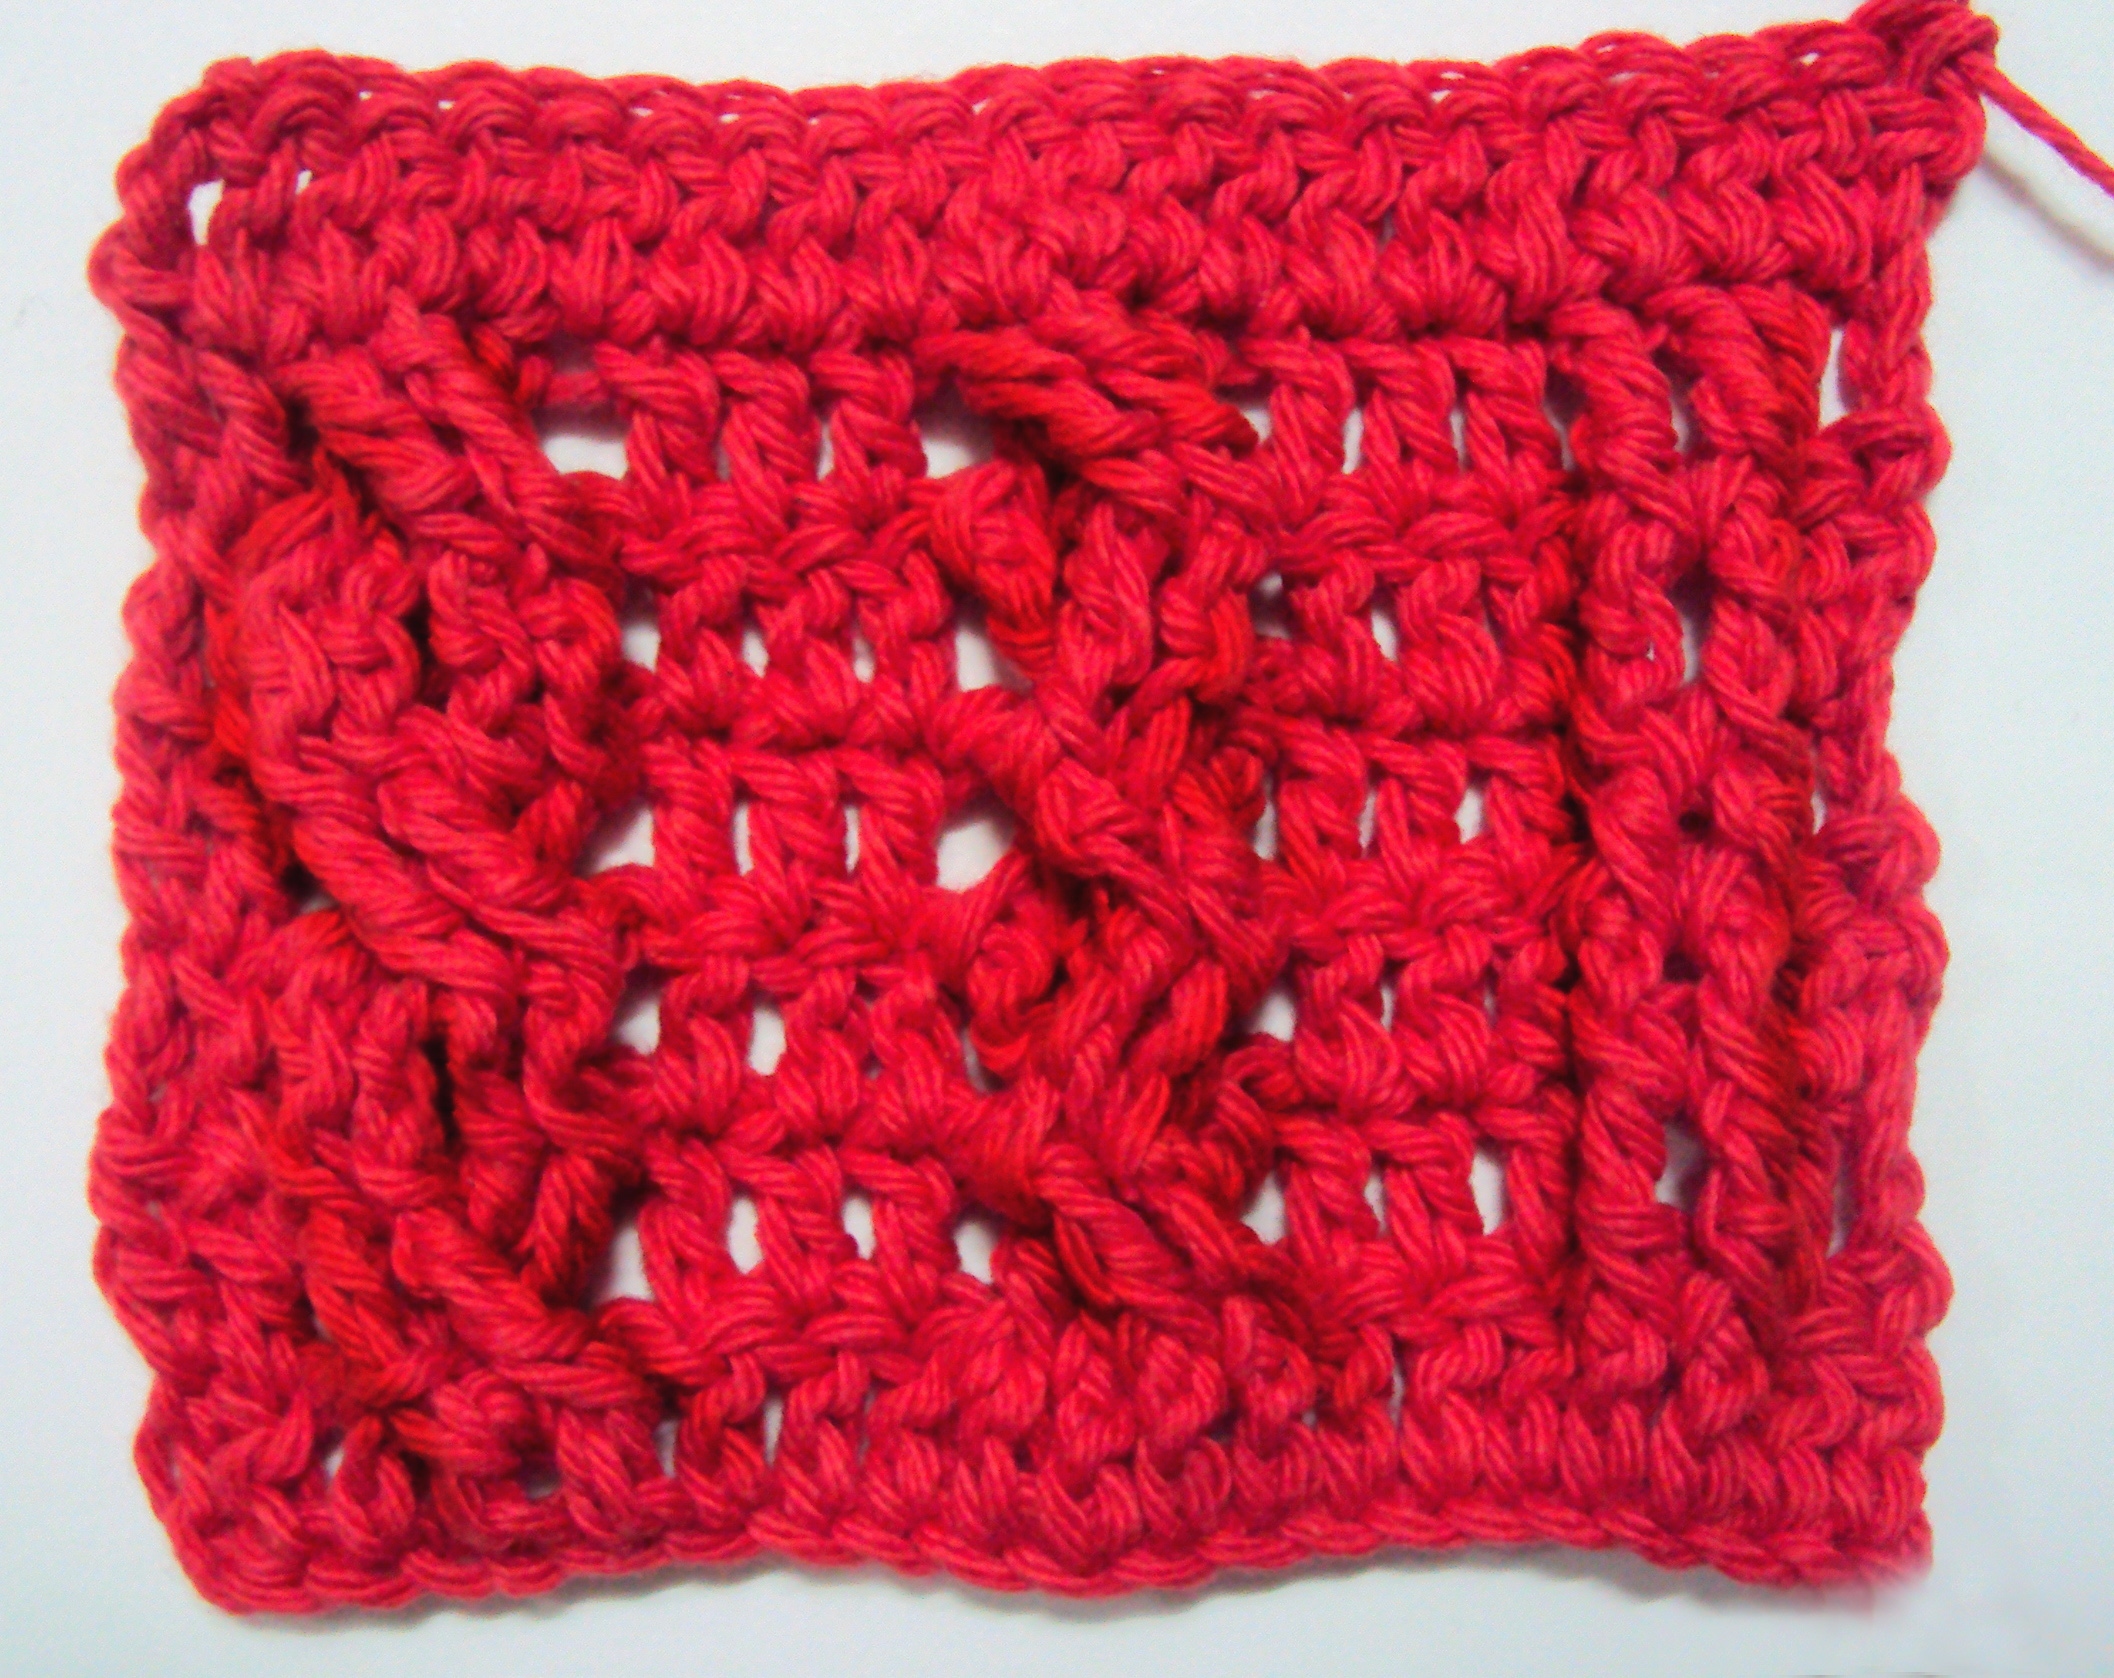 Crochet Stitches Designs : ... How to Crochet: Cable Stitches - Crochet Patterns, Tutorials and News